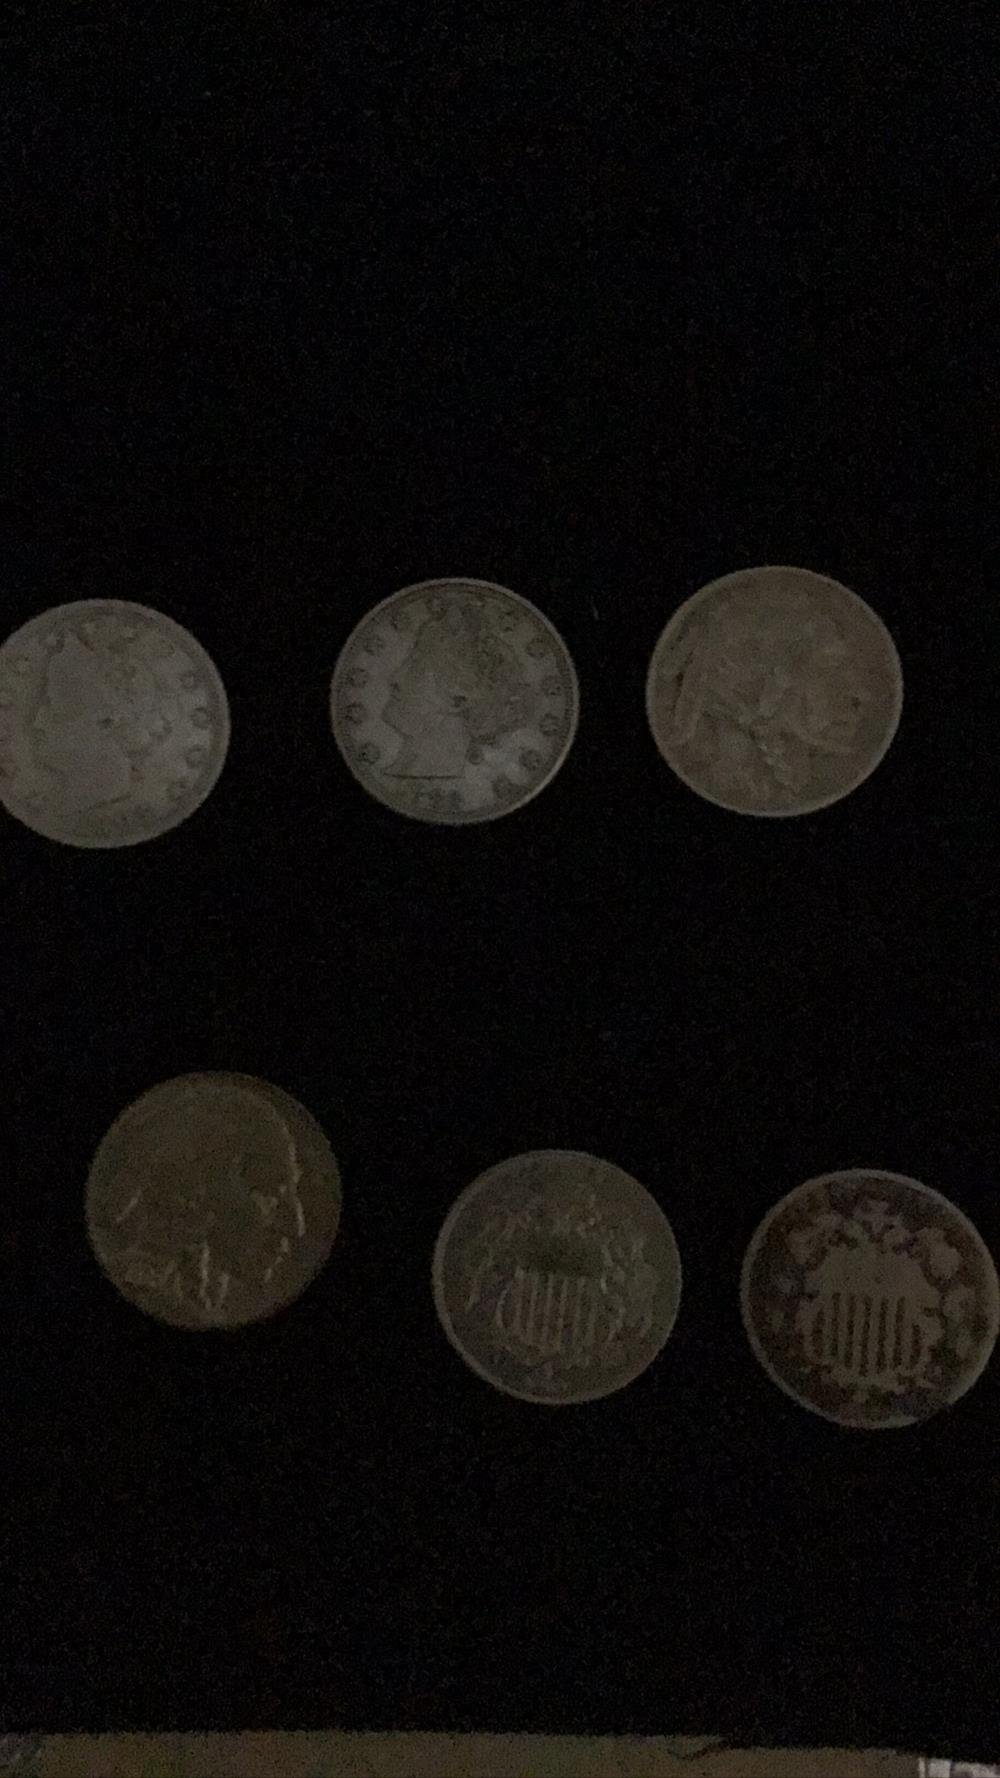 Six silver Nickels